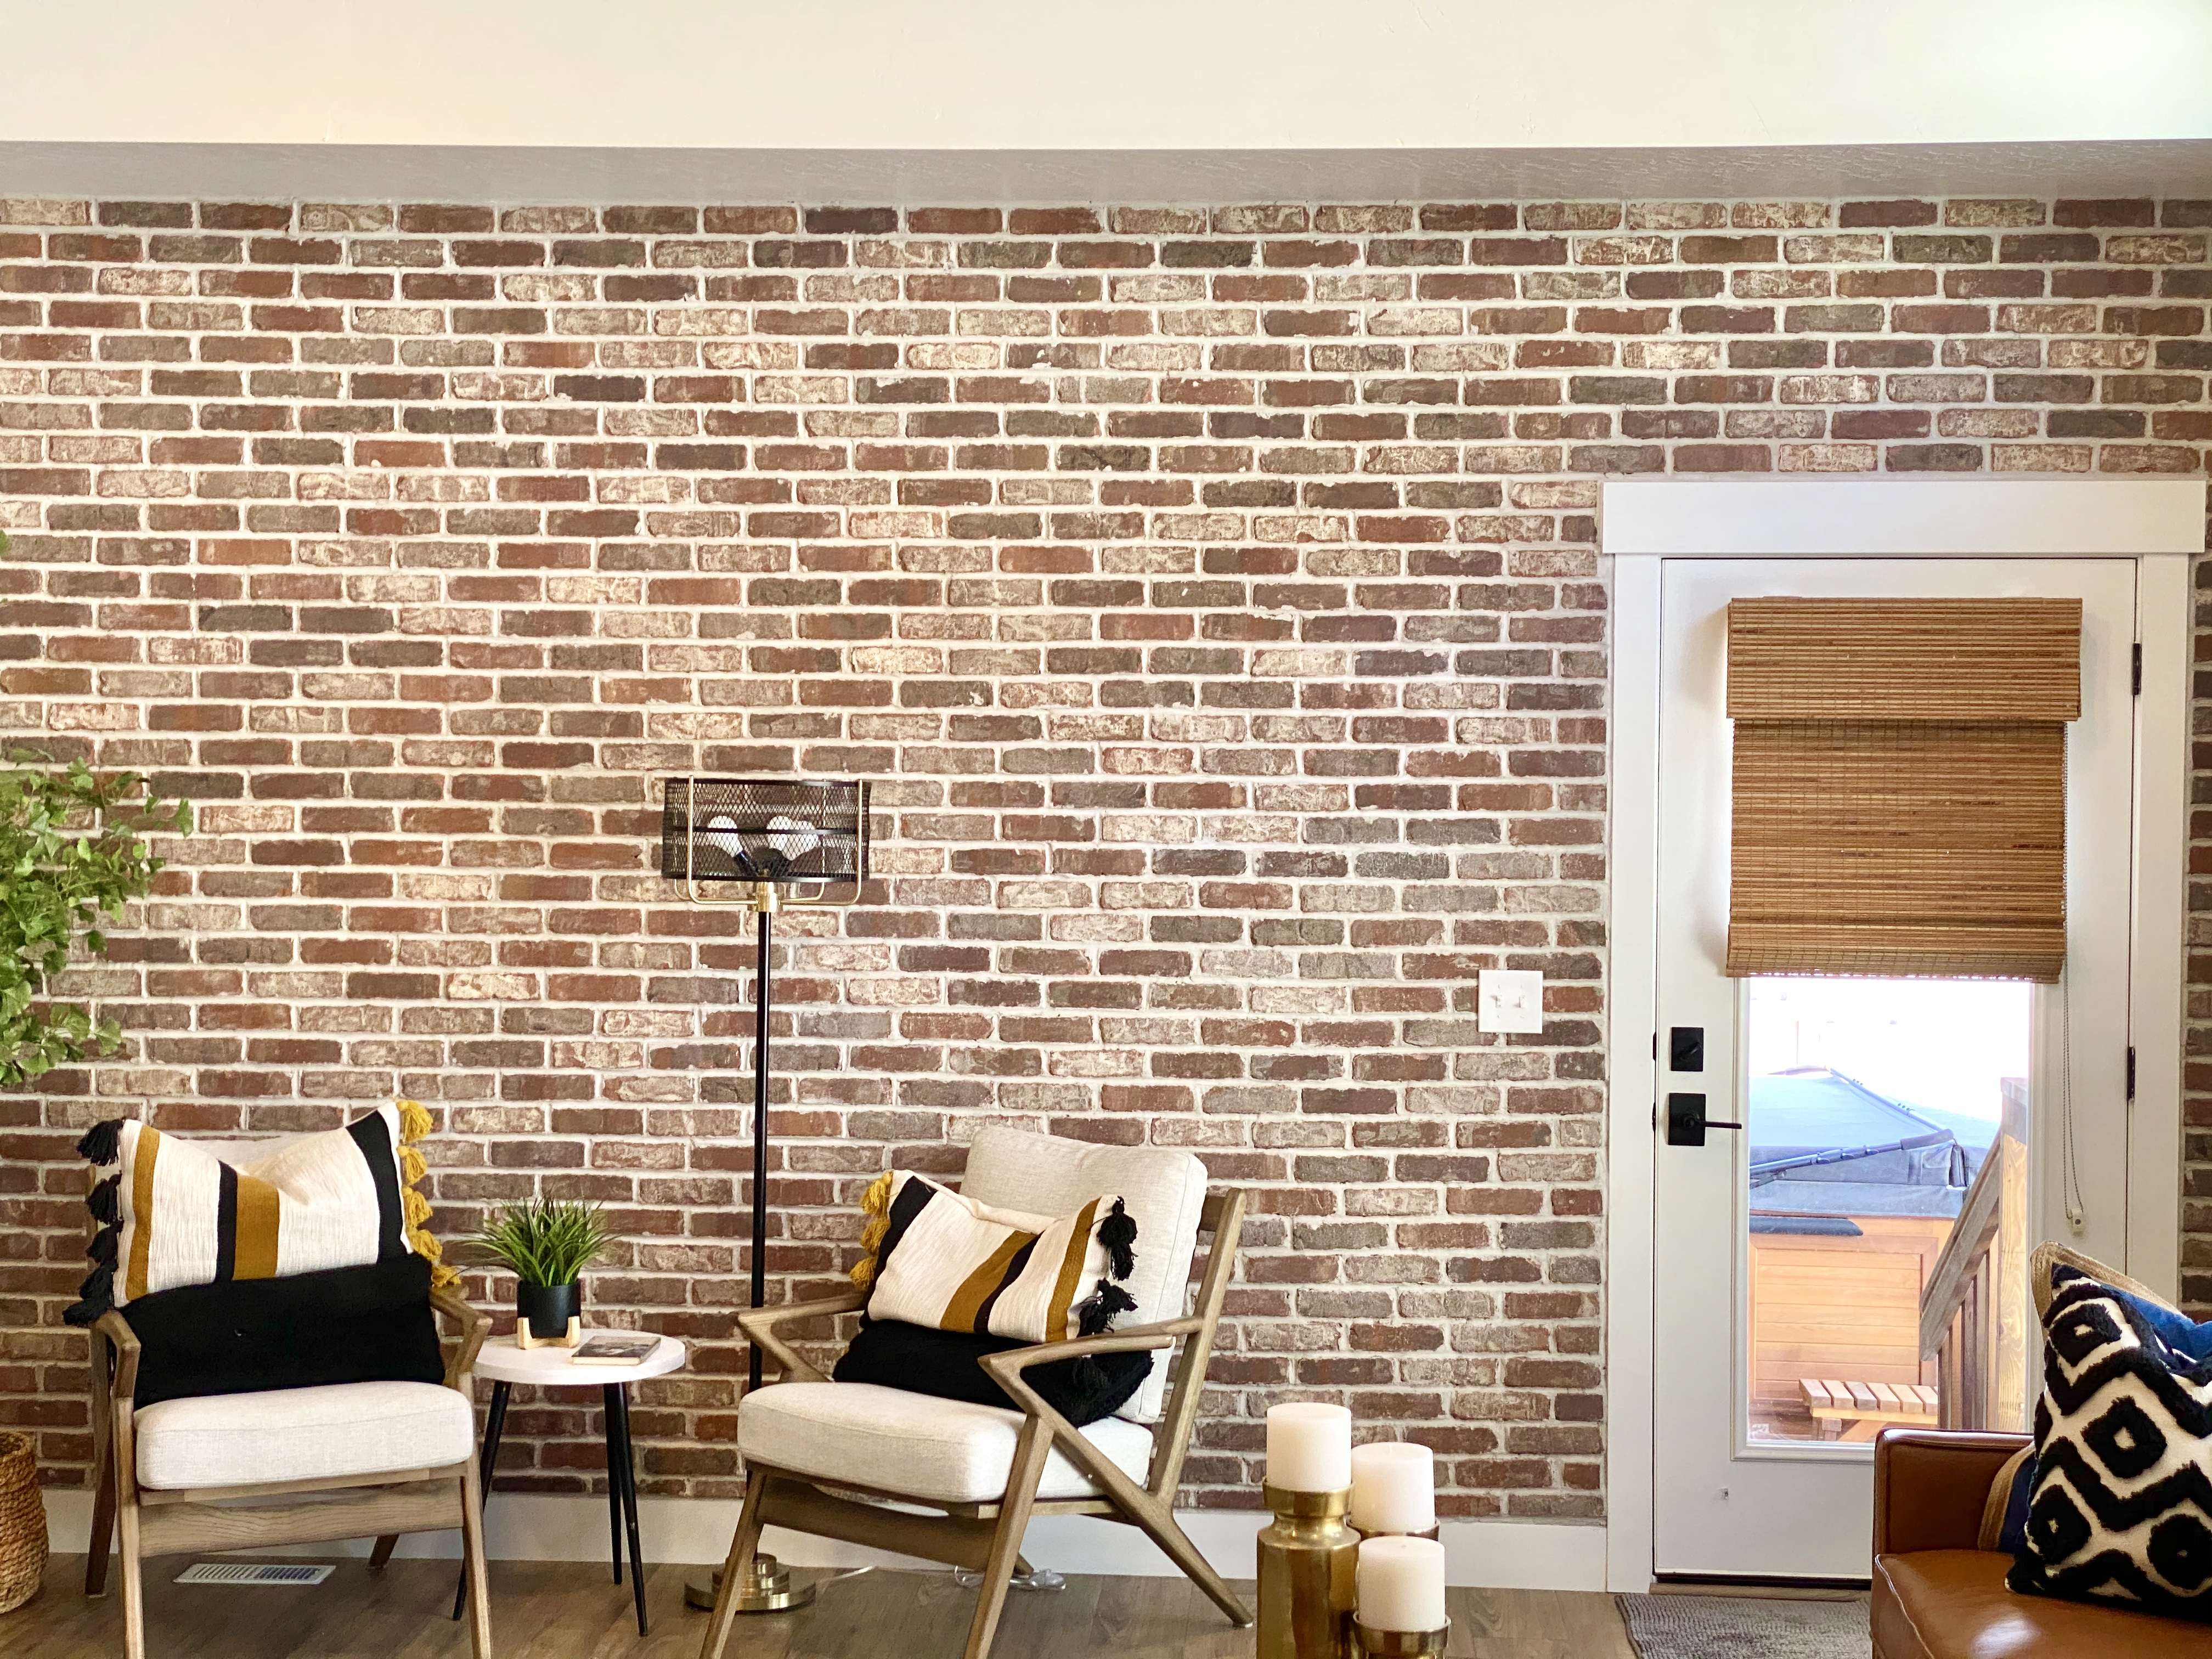 Brickwebb accent wall by Lou & Vicky Arne. Color: Boston Mill by Old Mill Brick